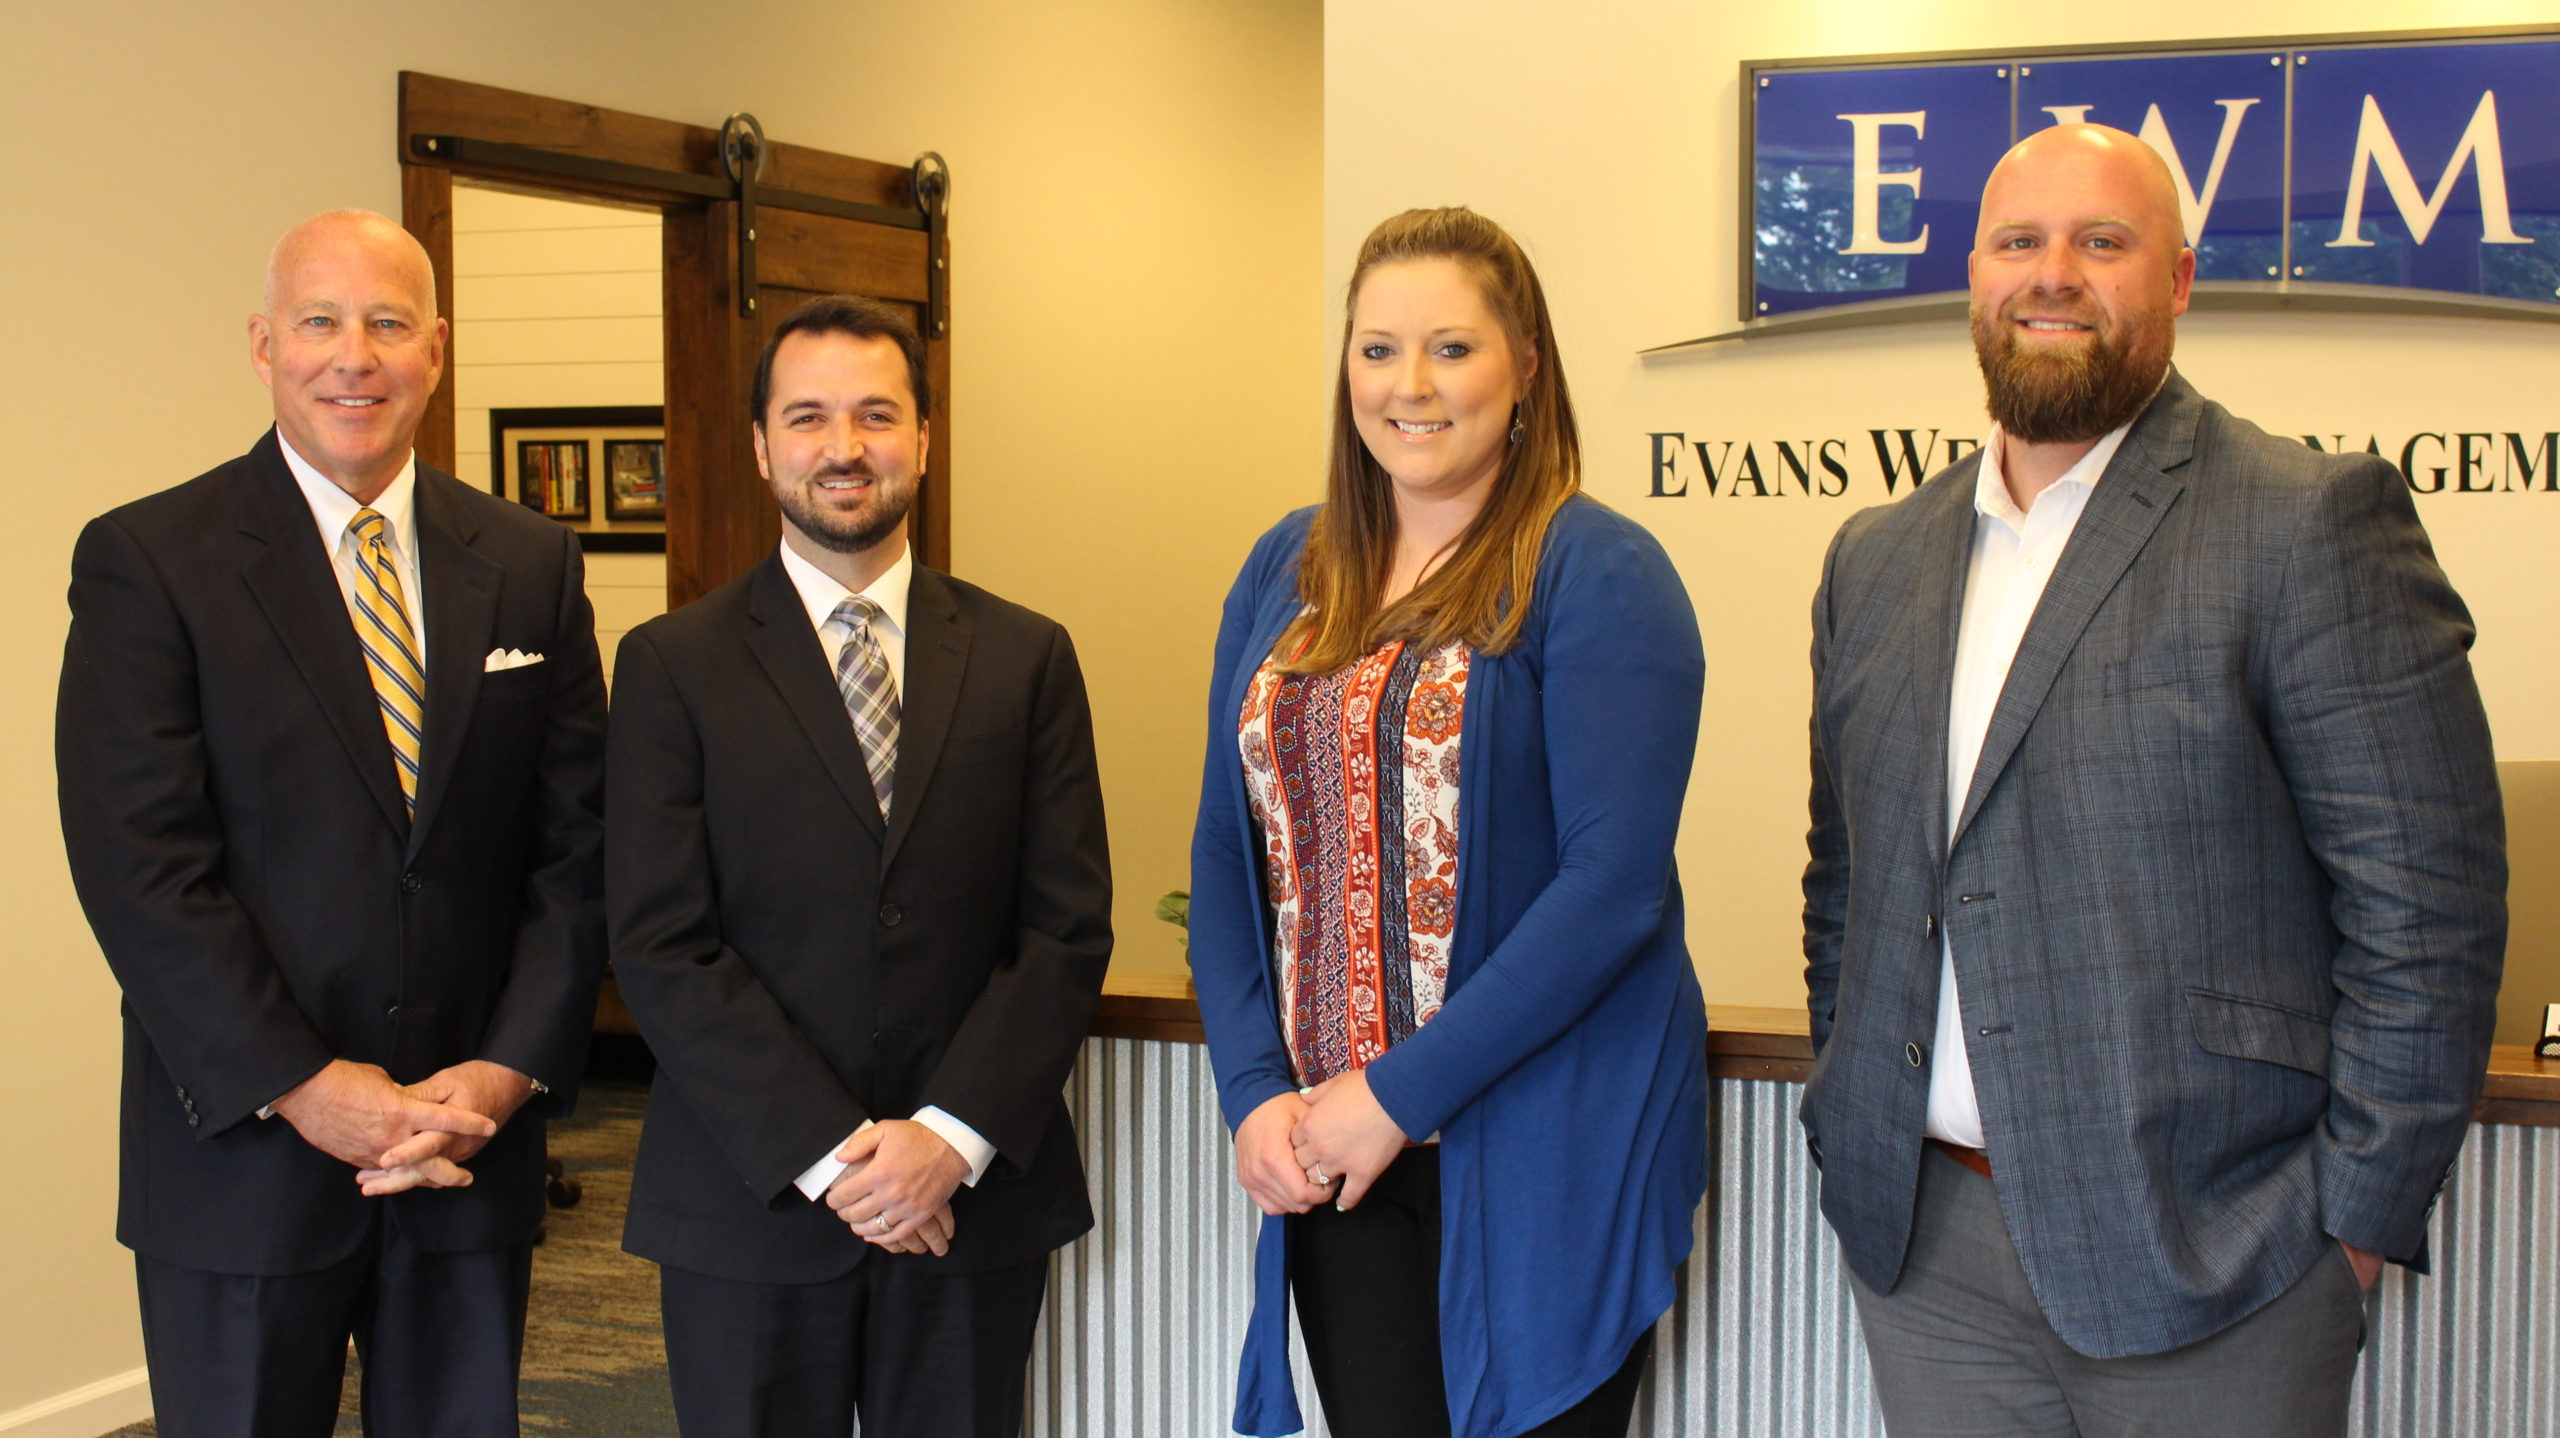 Evans Wealth Management Team Photo Standing in loby